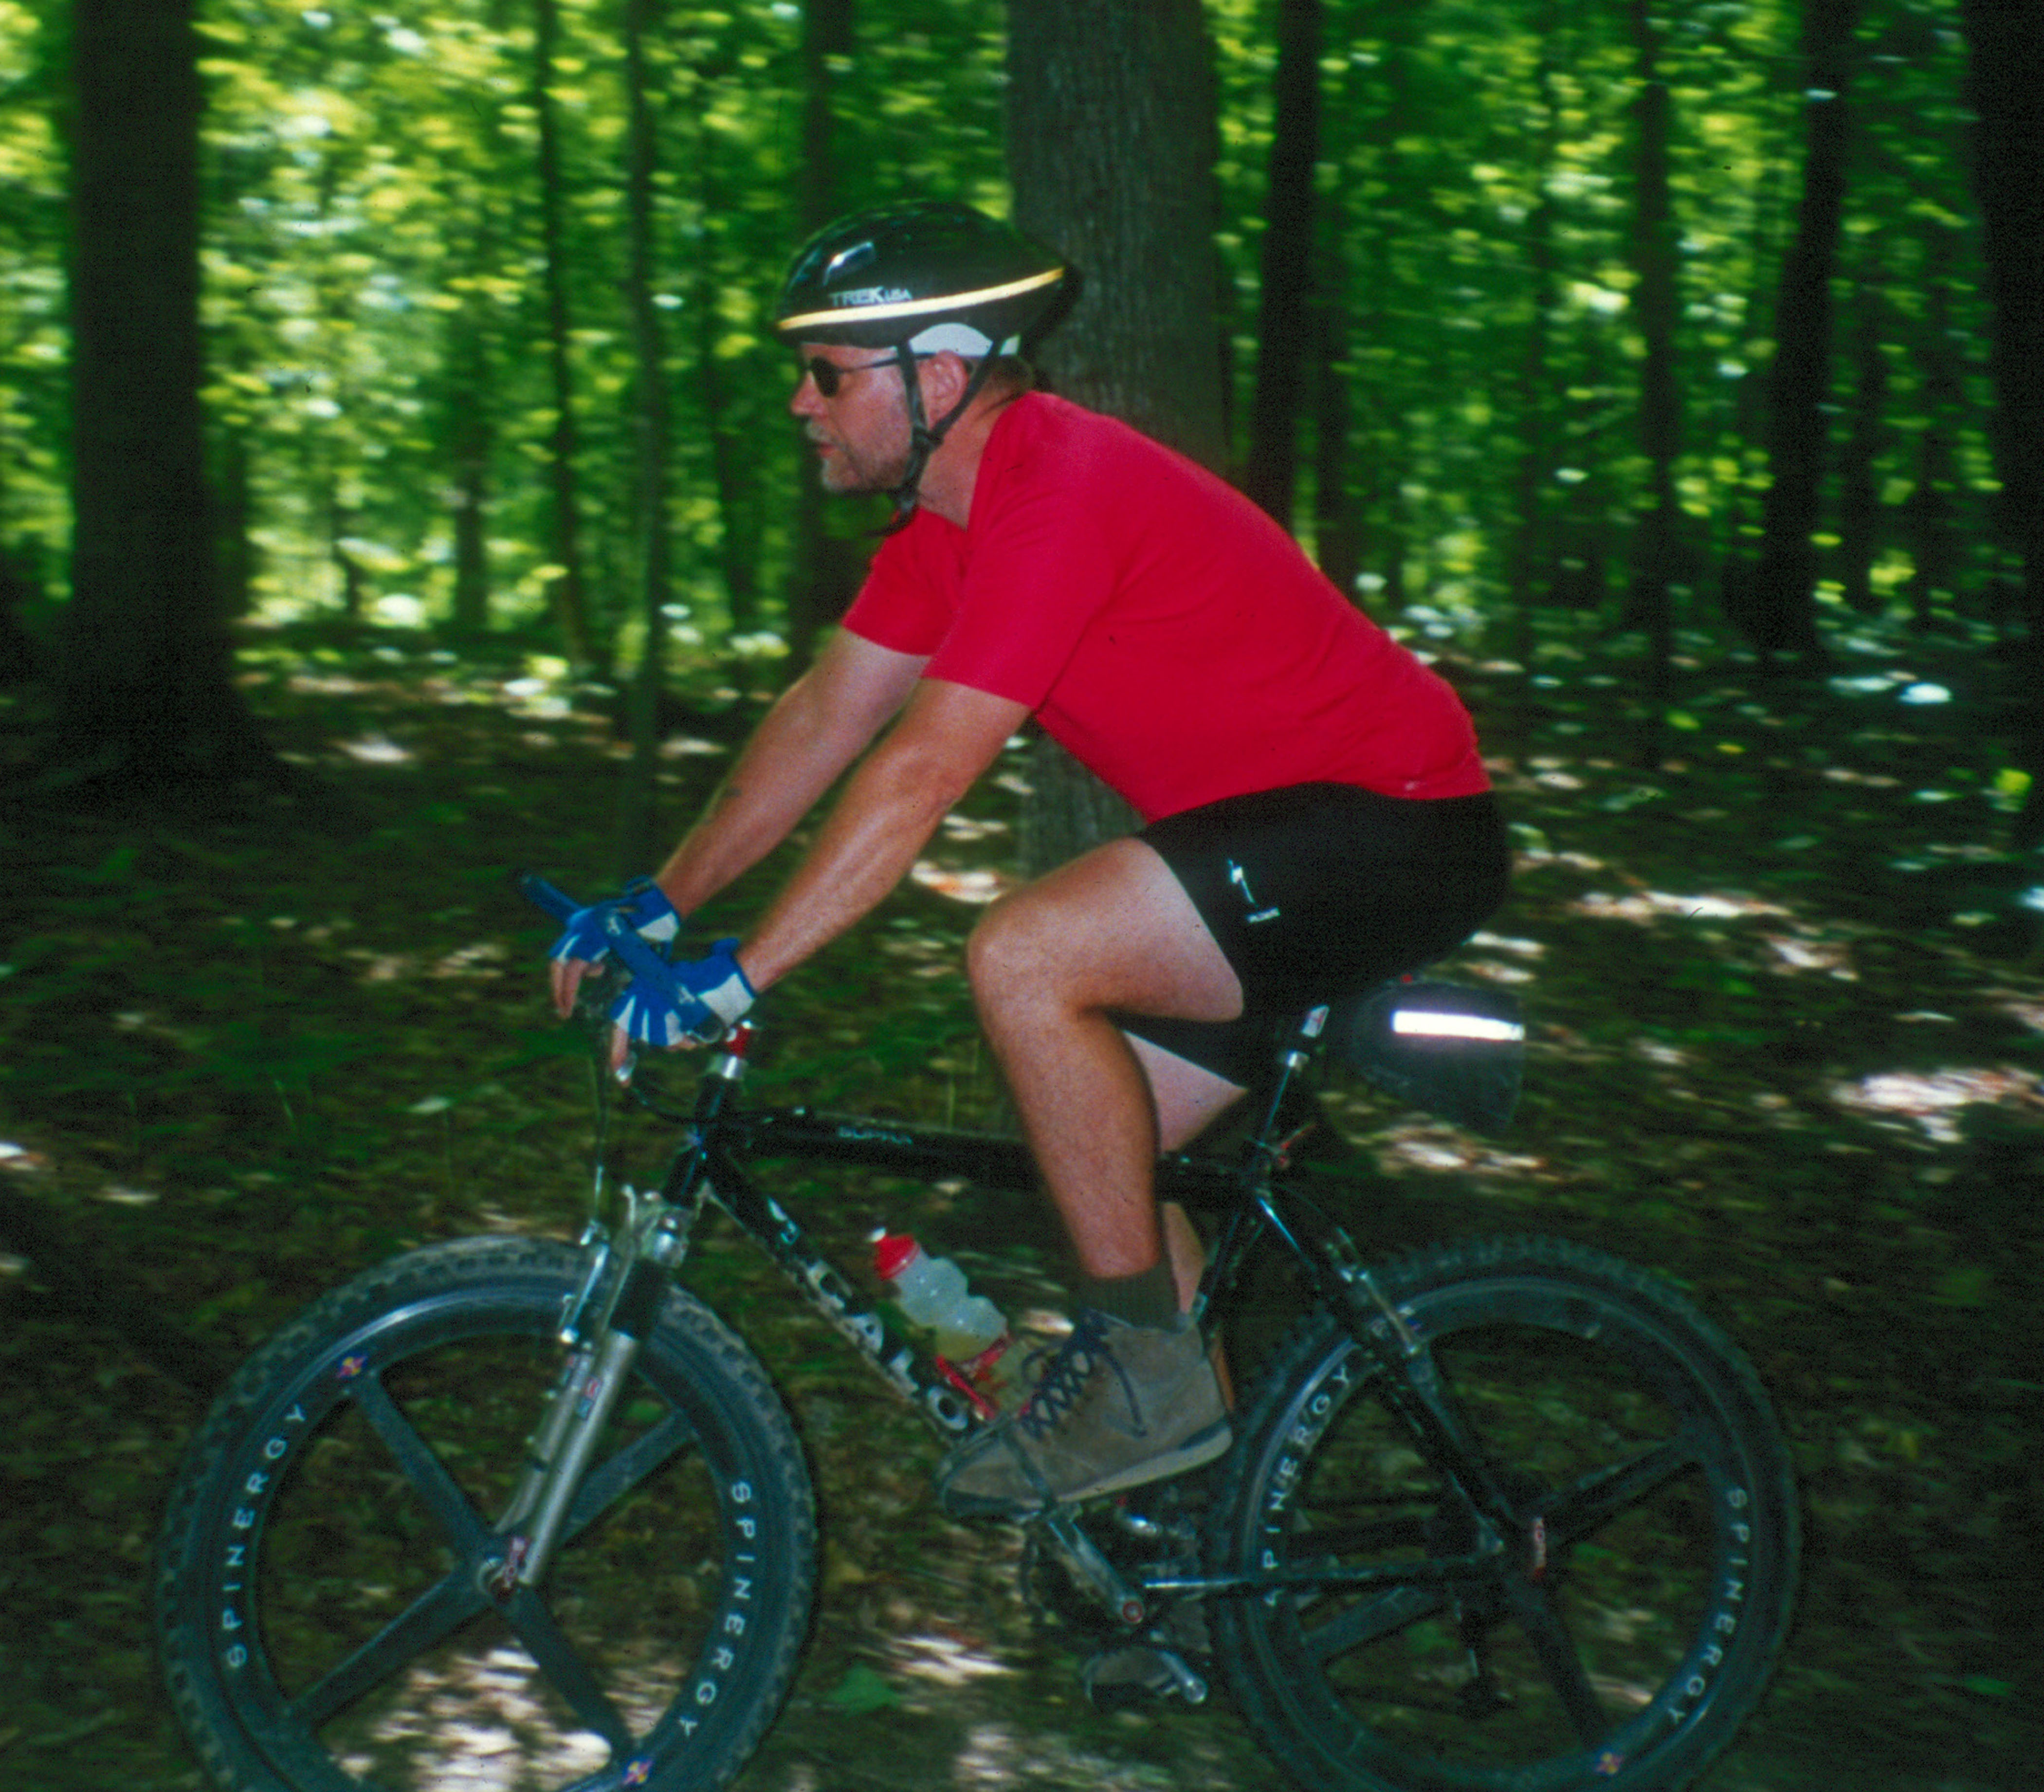 Mountain Bike Rider on Forest Trail